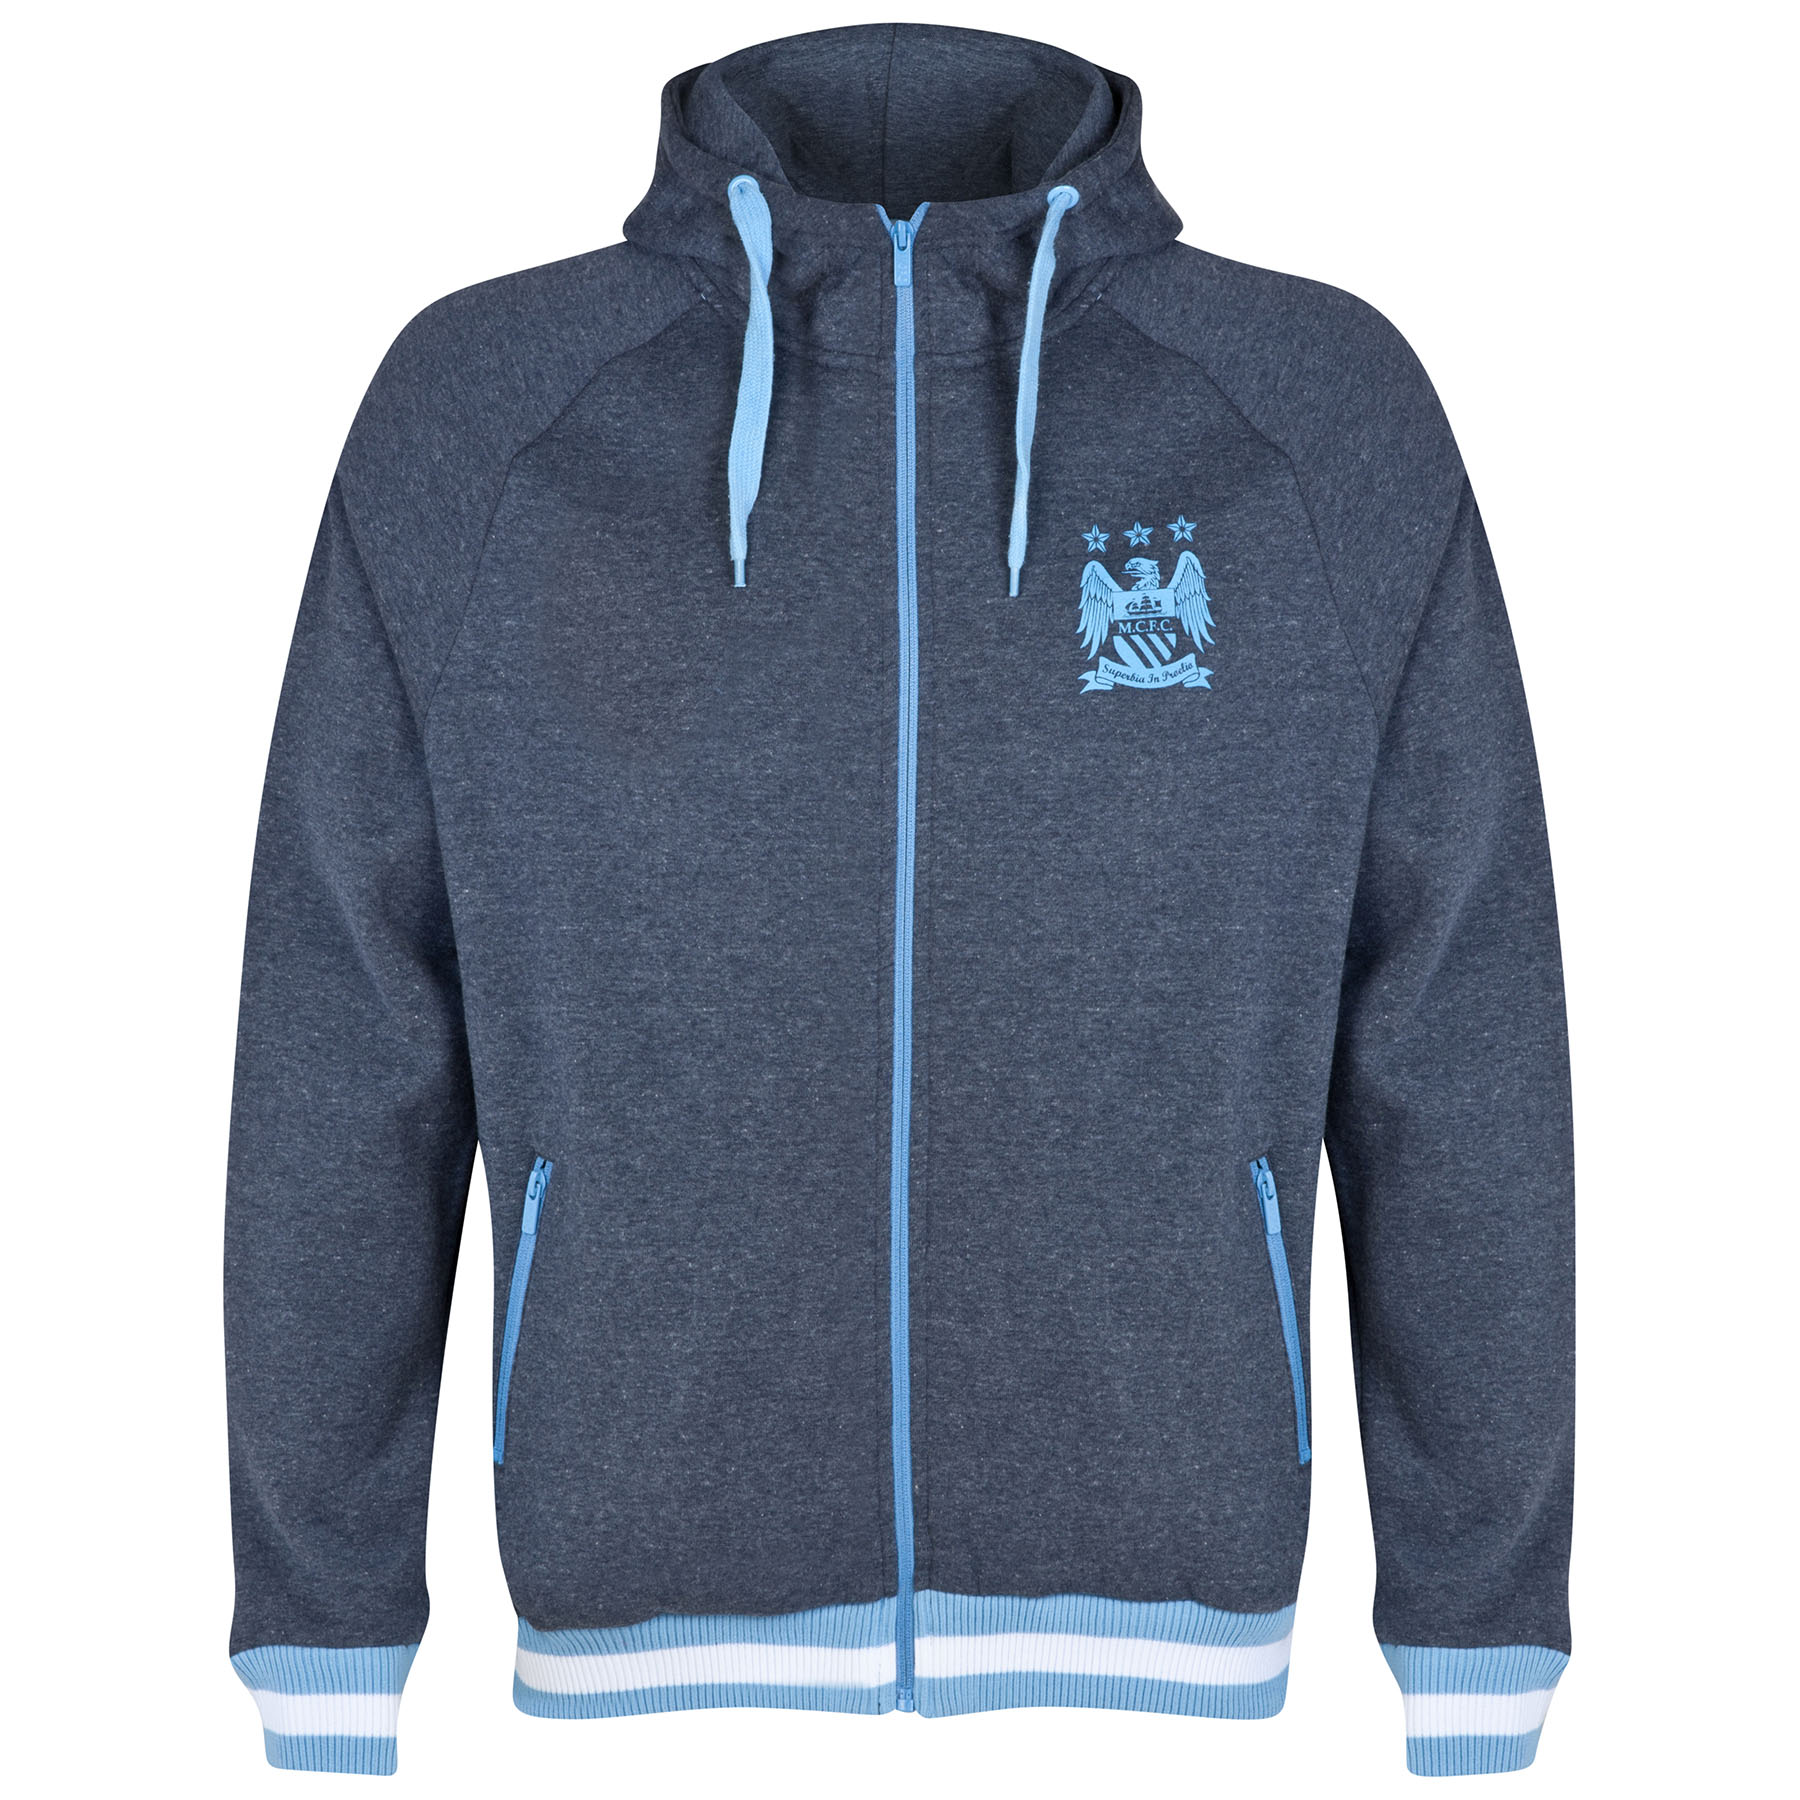 Manchester City Classic Hoodie - Heather Navy - Mens